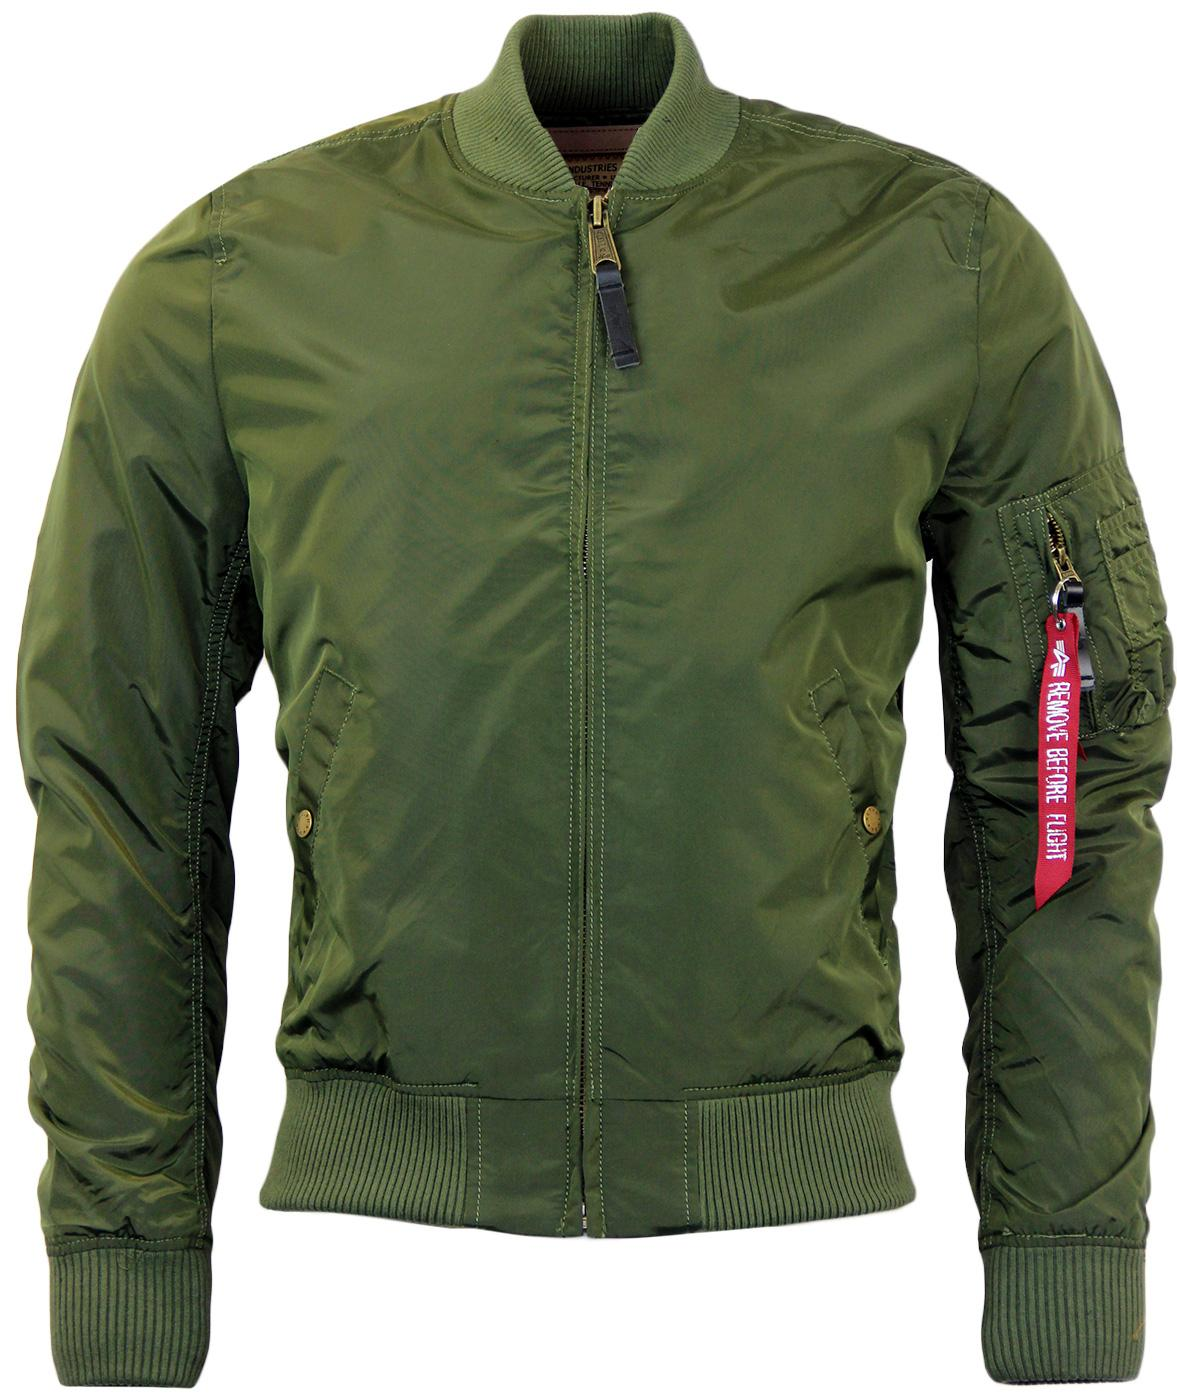 MA1 TT ALPHA INDUSTRIES Retro Mod Bomber Jacket DG